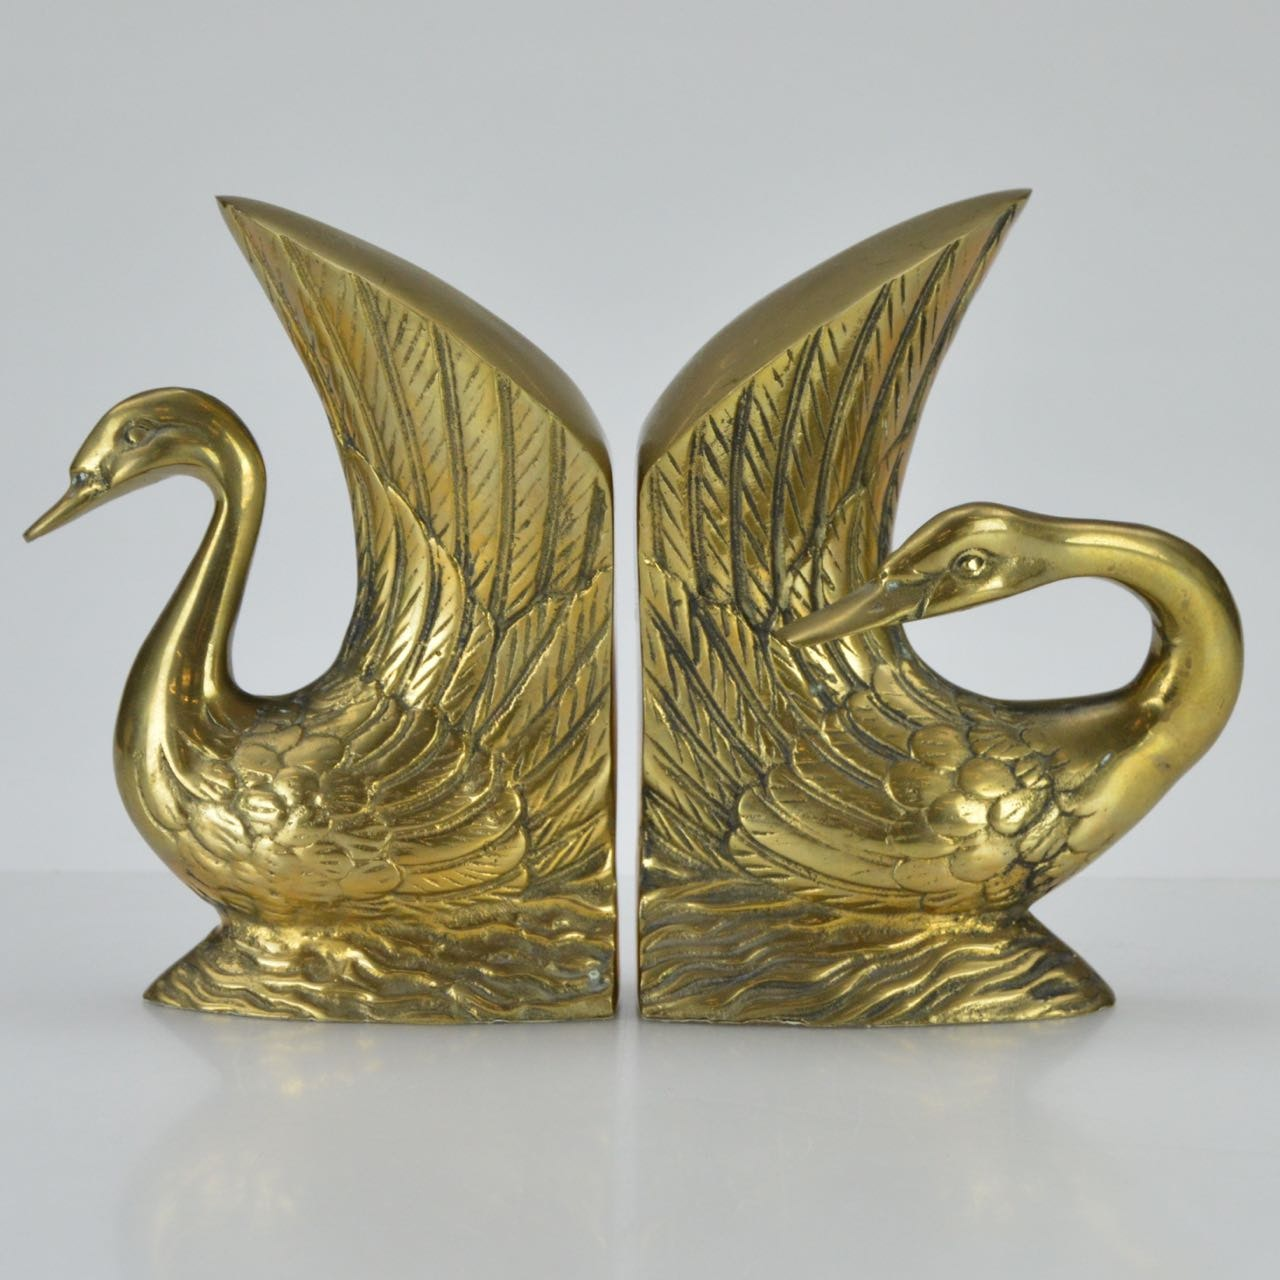 Weighted Brass Swan Bookends